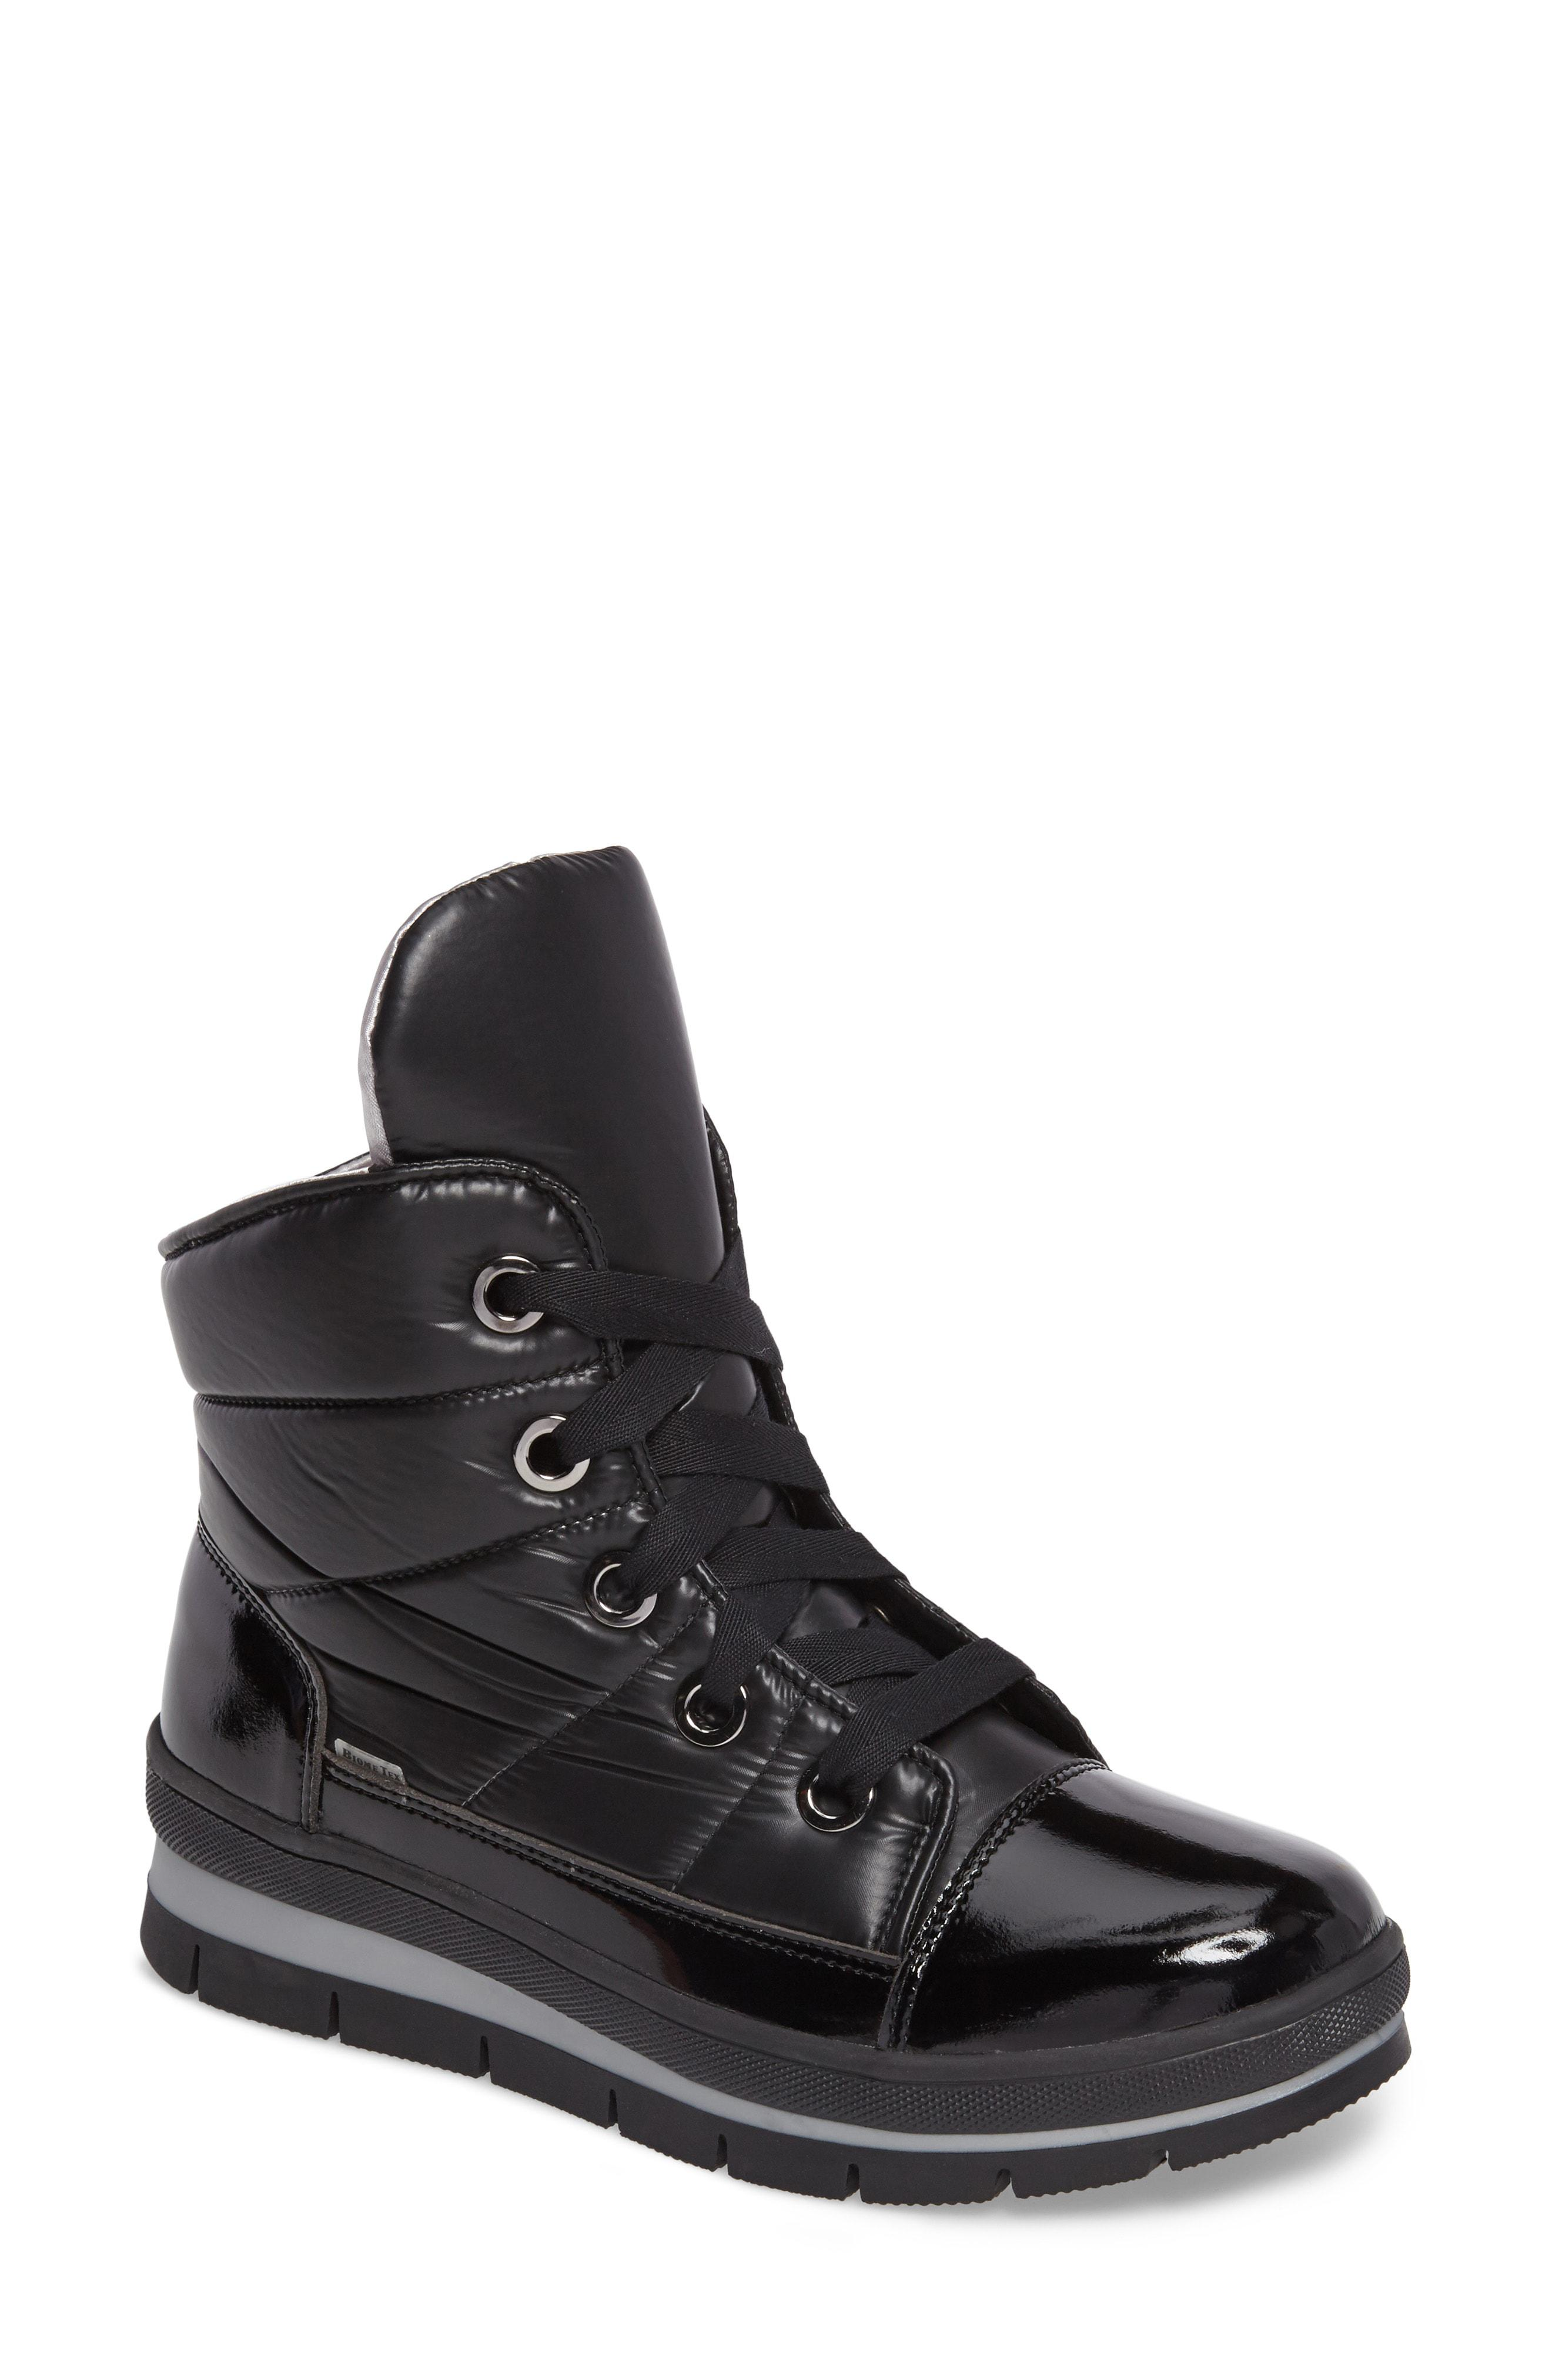 Lyst - Jog Dog Snowdon Waterproof Quilted Sneaker Boot in Black d51d76b64